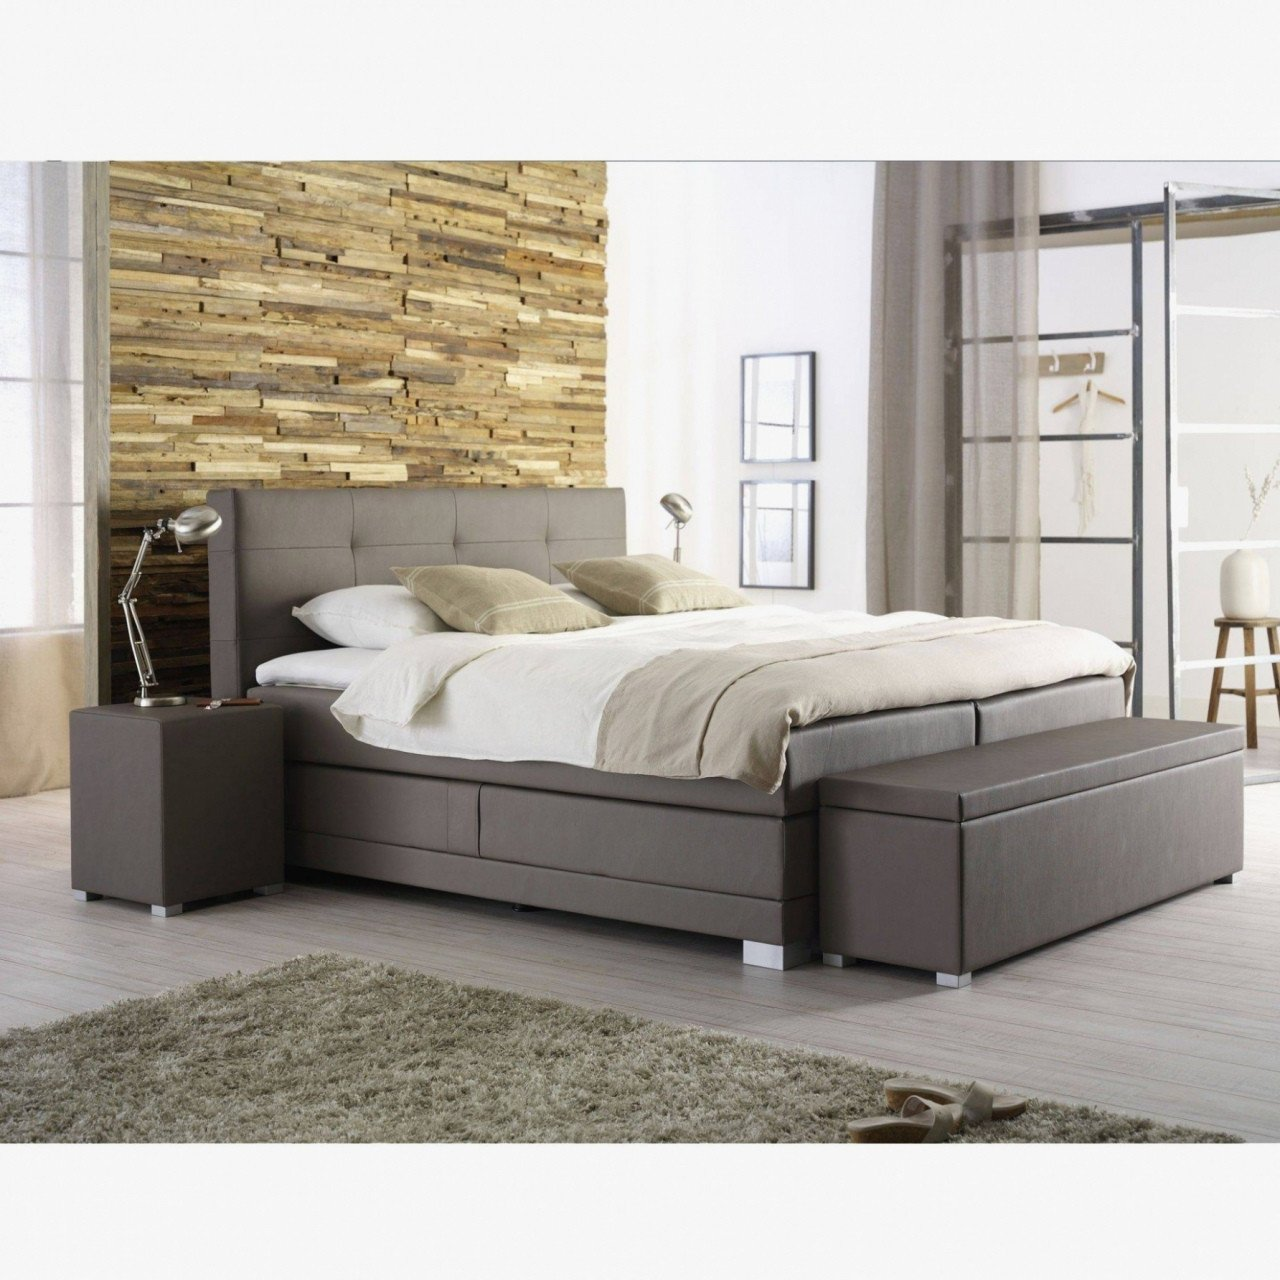 Bedroom Set with Mattress Included Elegant Bed with Drawers — Procura Home Blog